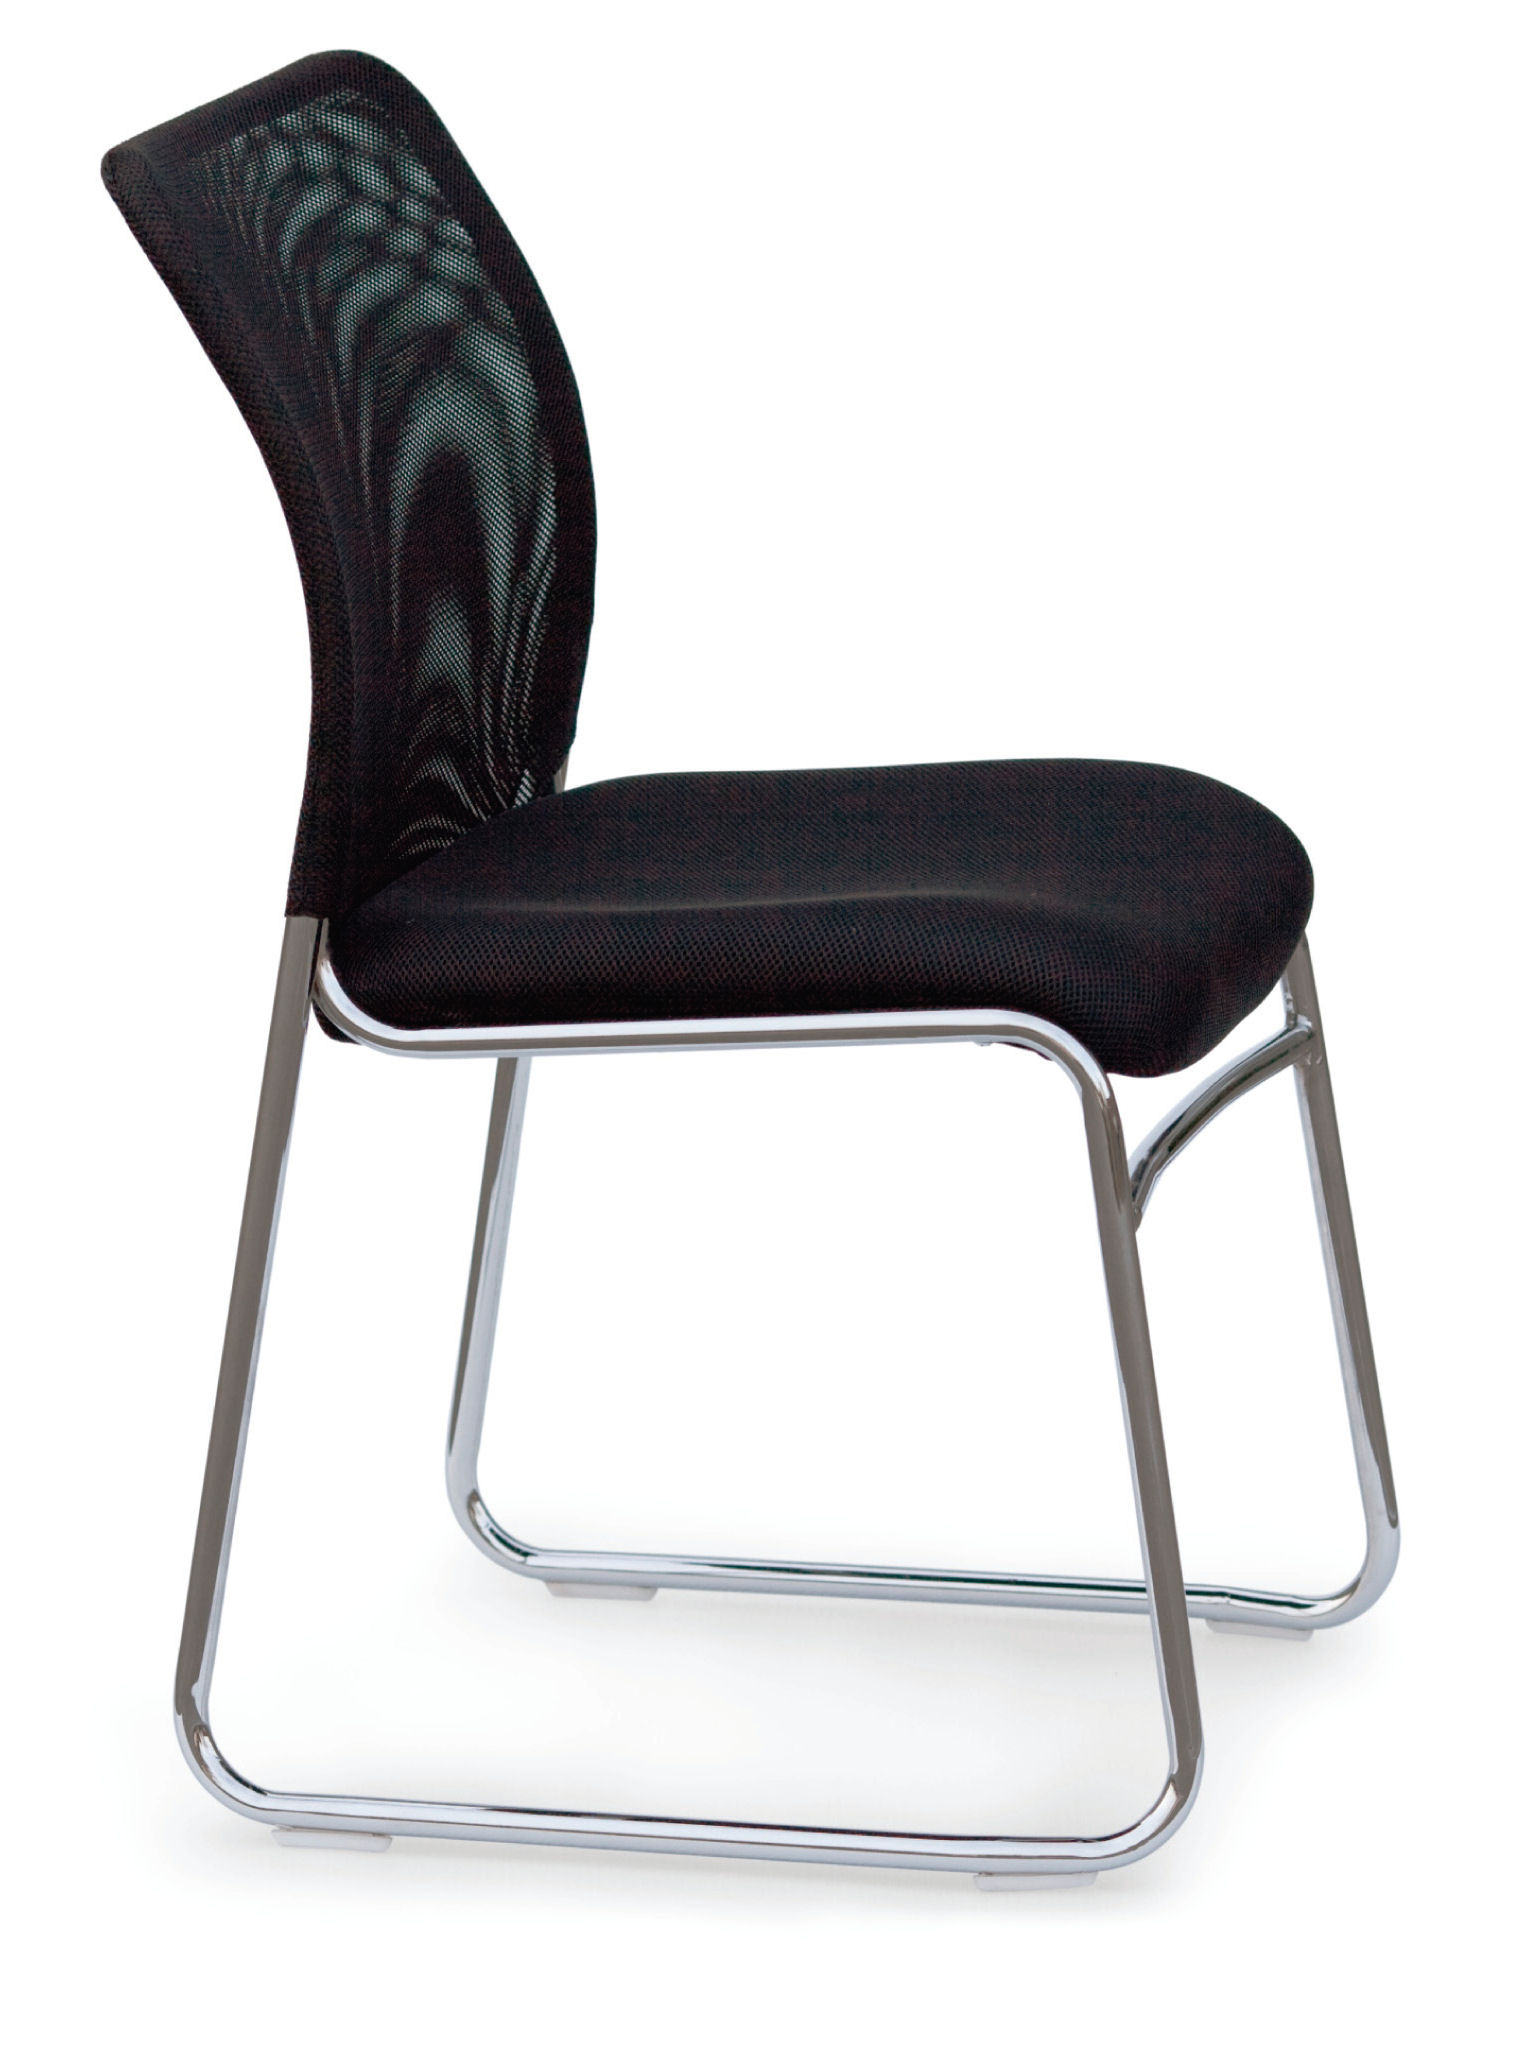 Desk Chairs Without Wheels You Ll Love In 2020 Visualhunt